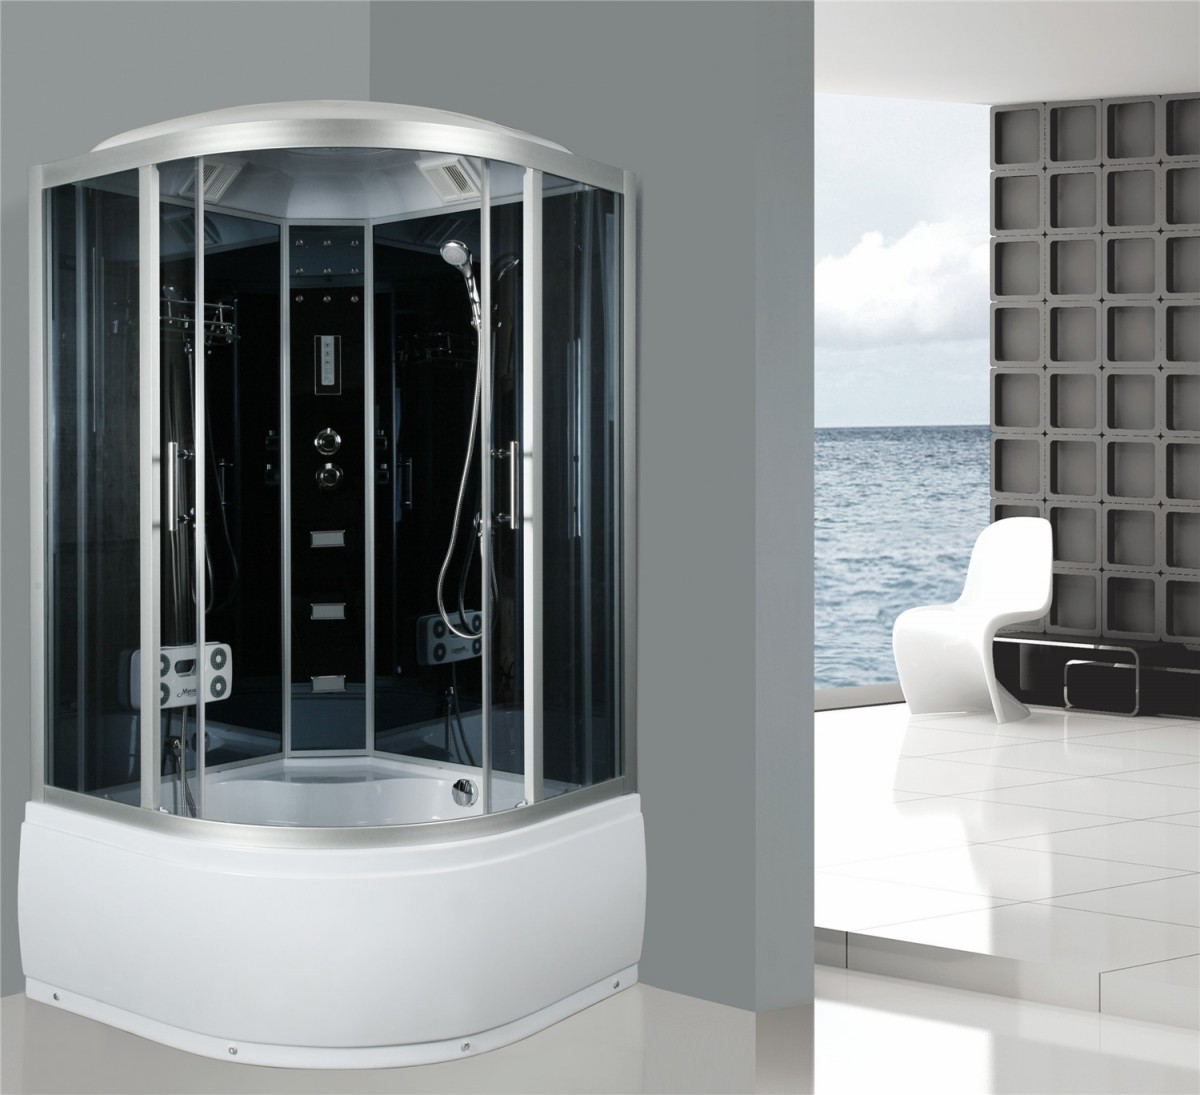 cabine de douche compl te sanifun olympia 110 x 110. Black Bedroom Furniture Sets. Home Design Ideas